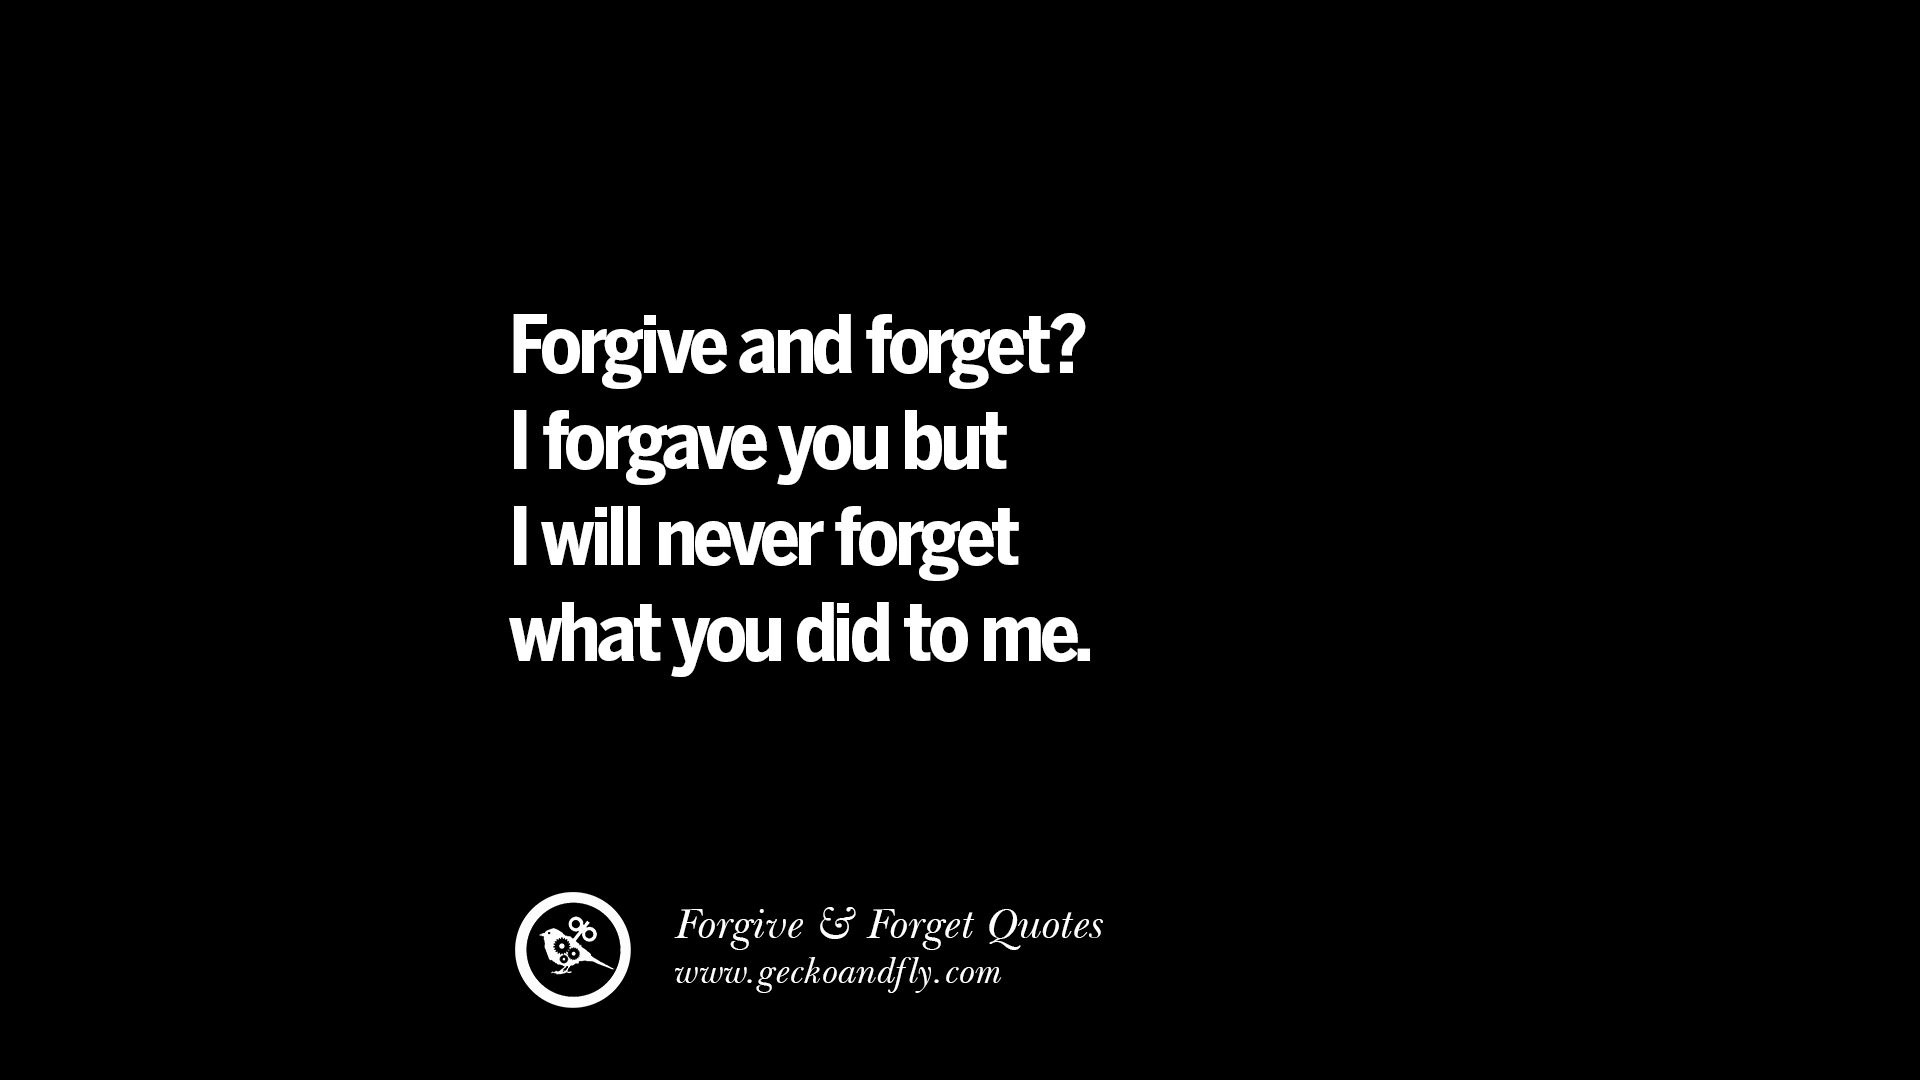 forgive and forget difficulties doing The next step is giving yourself permission to forgive and forget, letting go of the bitterness while remembering very clearly your rights to healthy boundaries granting forgiveness forgiveness is not letting the offender off the hook.